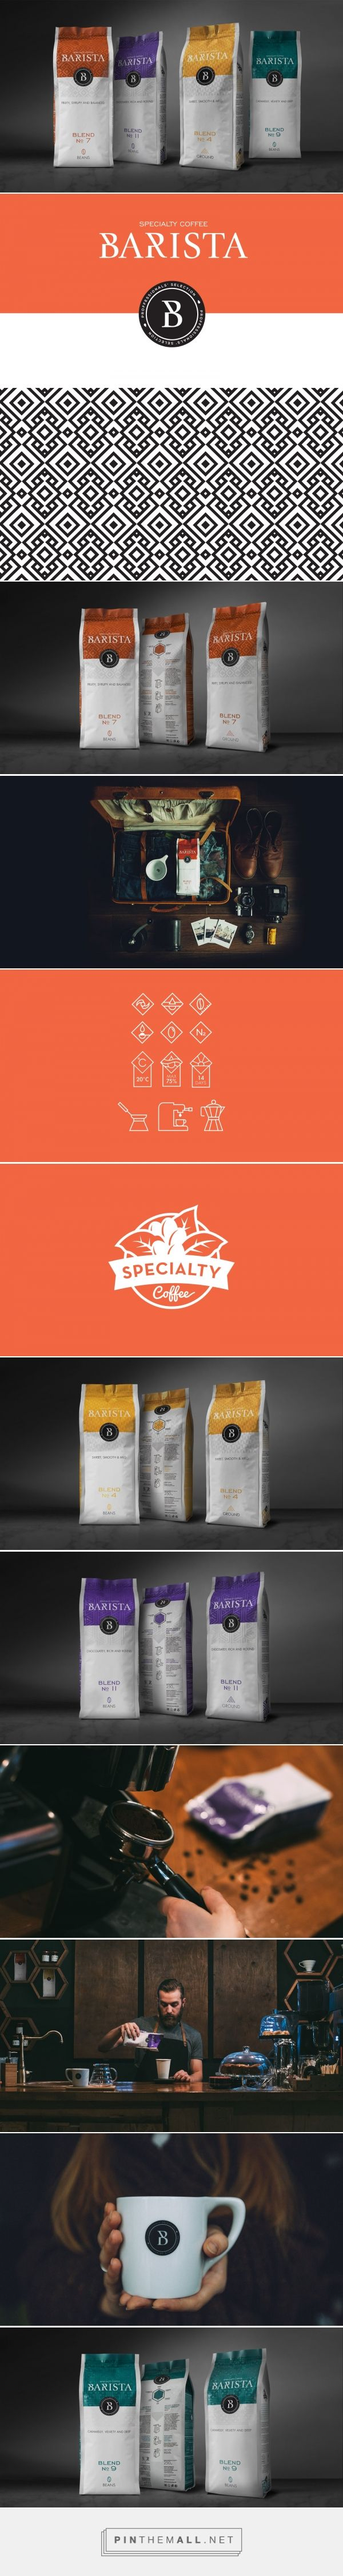 Barista Coffee packaging design by Skybox Design Agency (Russia)…